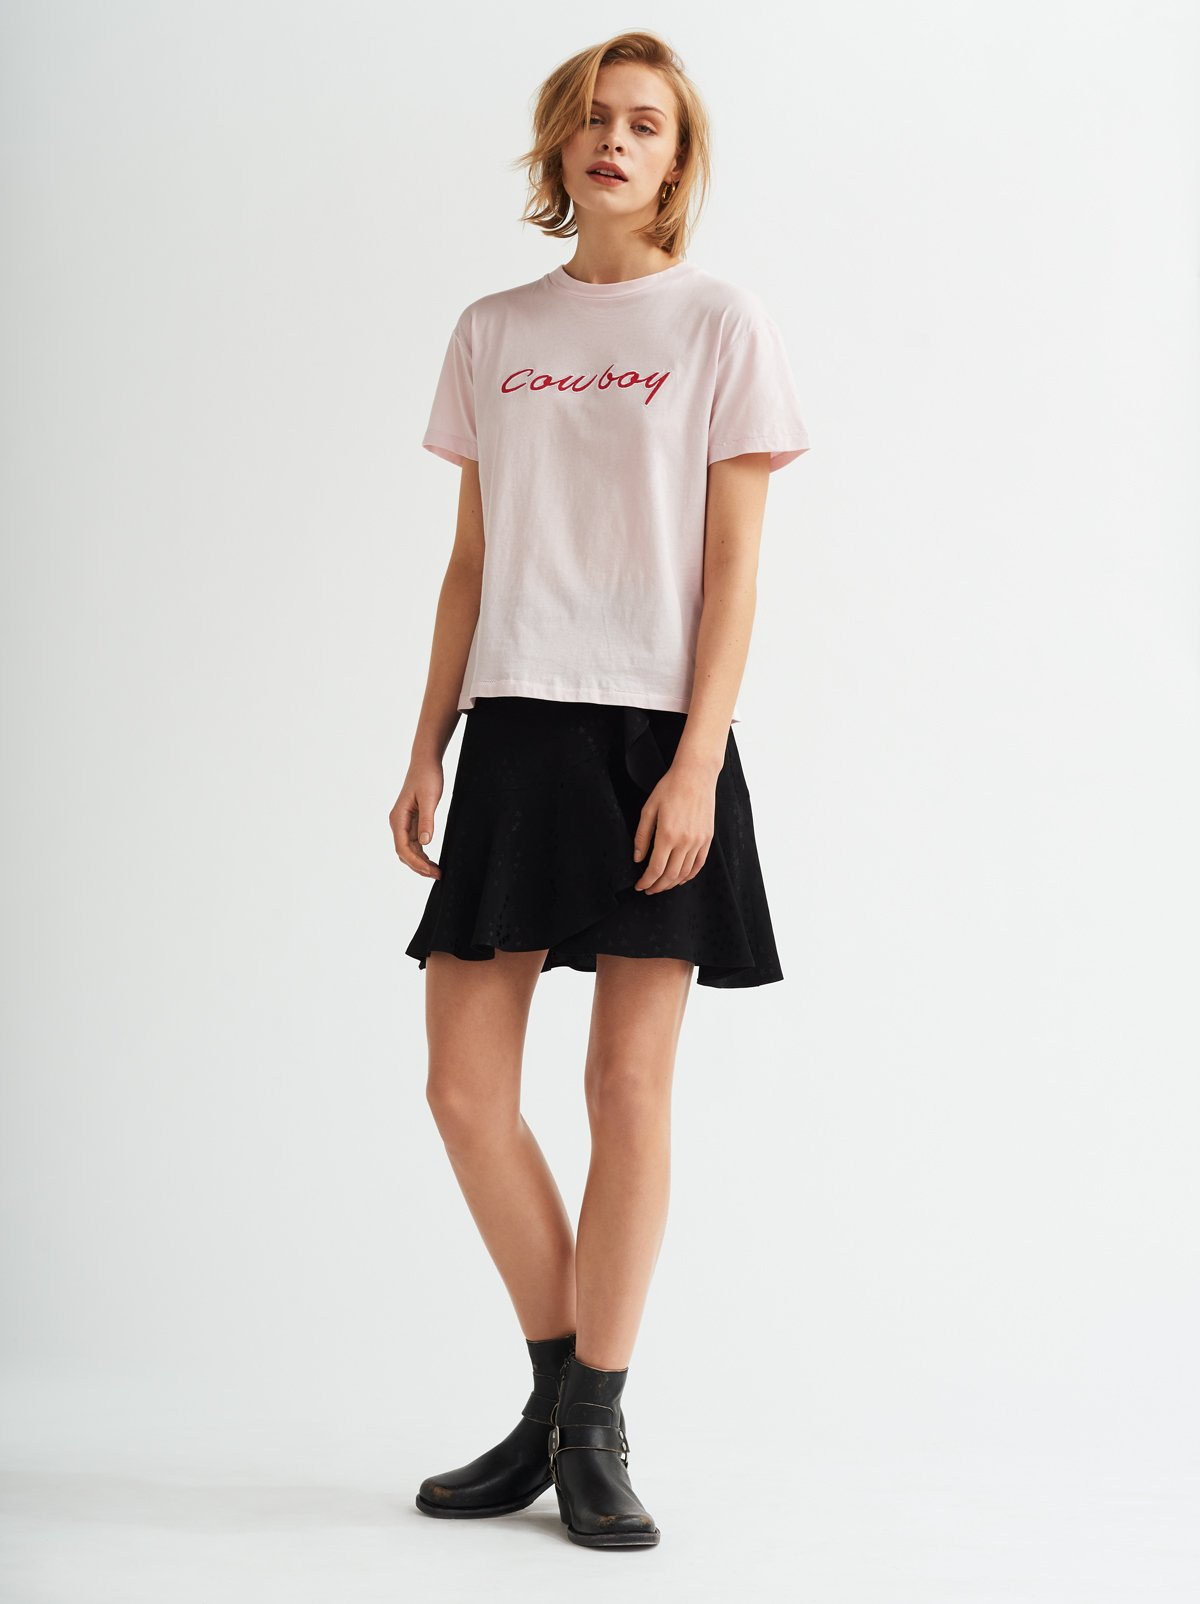 Cowboy Printed Pink Cotton Crew Neck T-shirt by KITRI Studio